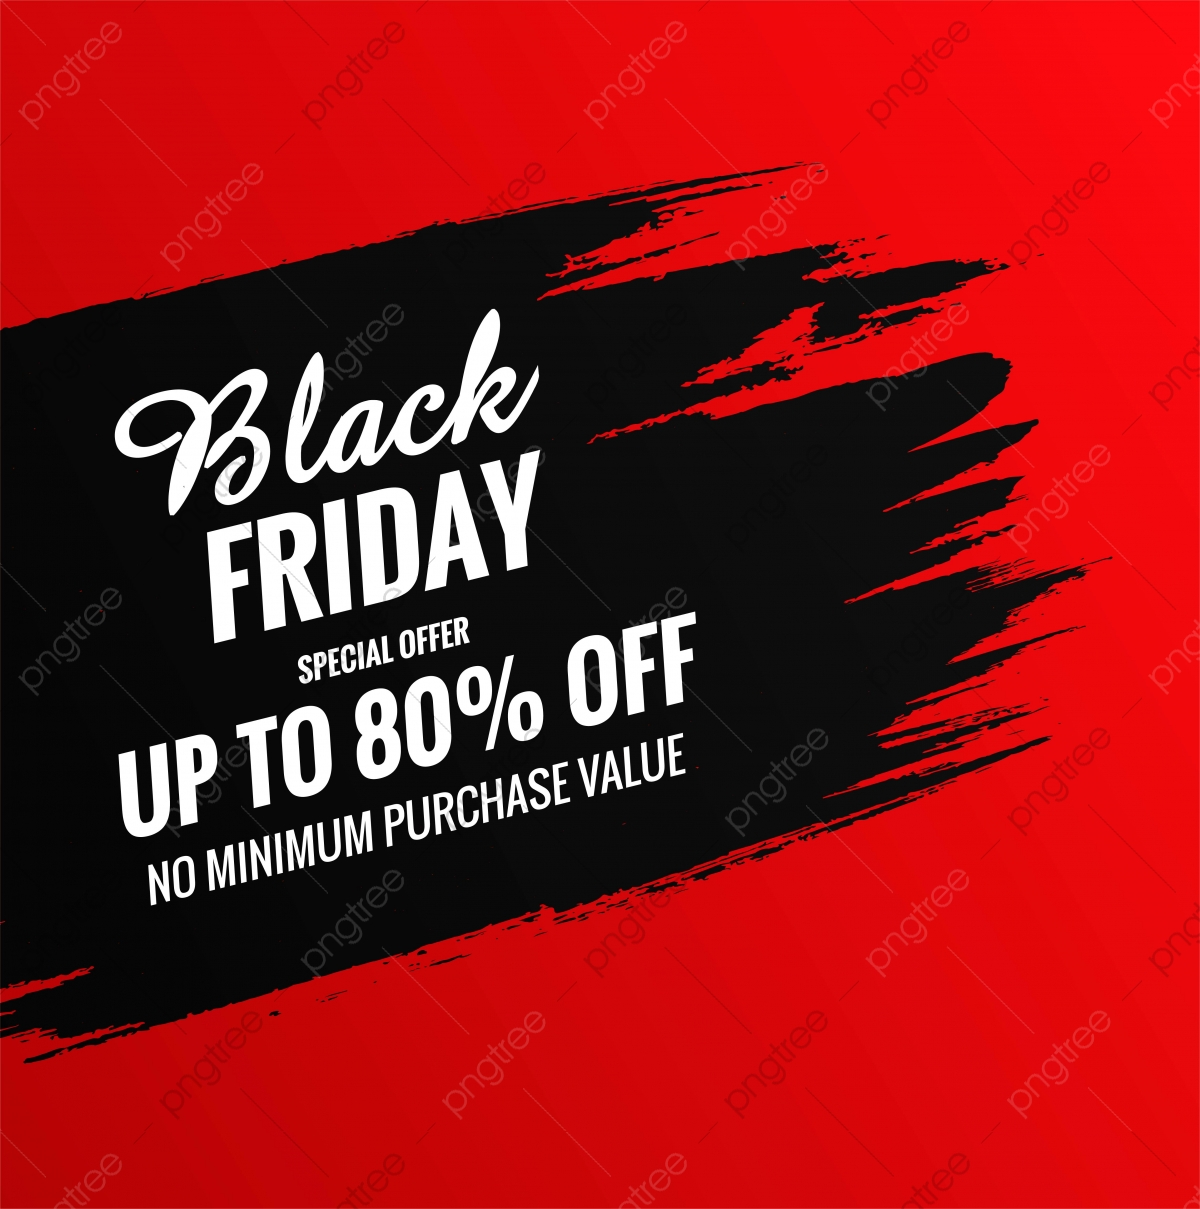 Red Background With Black Brush Stroke Black Friday Sale Design Background Sale Black Friday Png And Vector With Transparent Background For Free Download